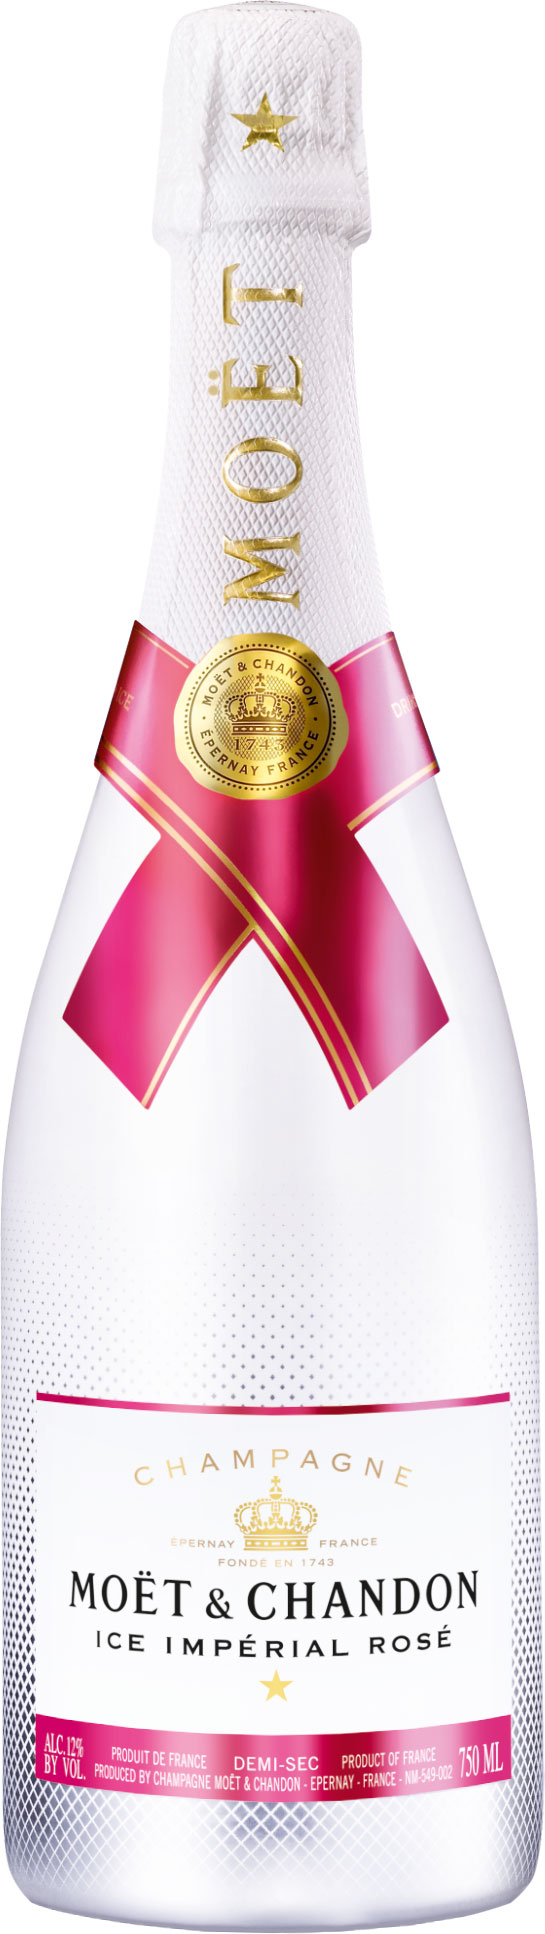 Moet & Chandon  Ice Imperial Rose 75cl Bottle